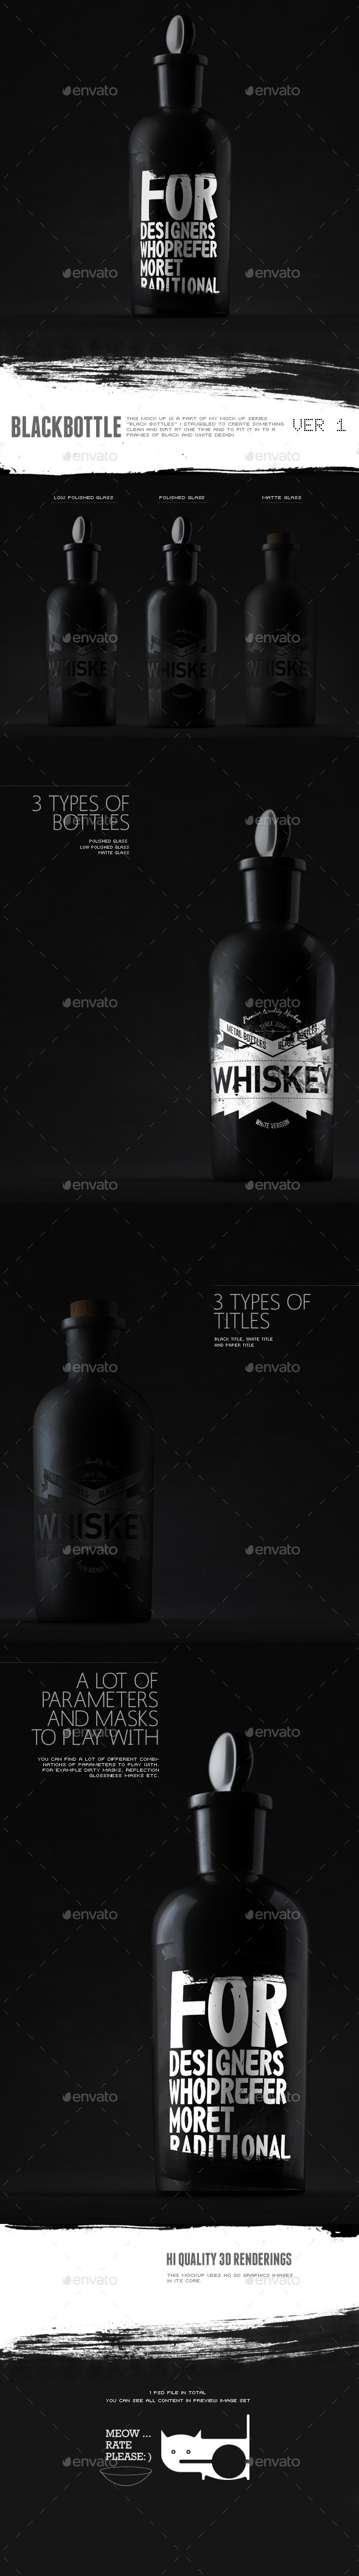 GraphicRiver Black Bottle Mockup 10894683